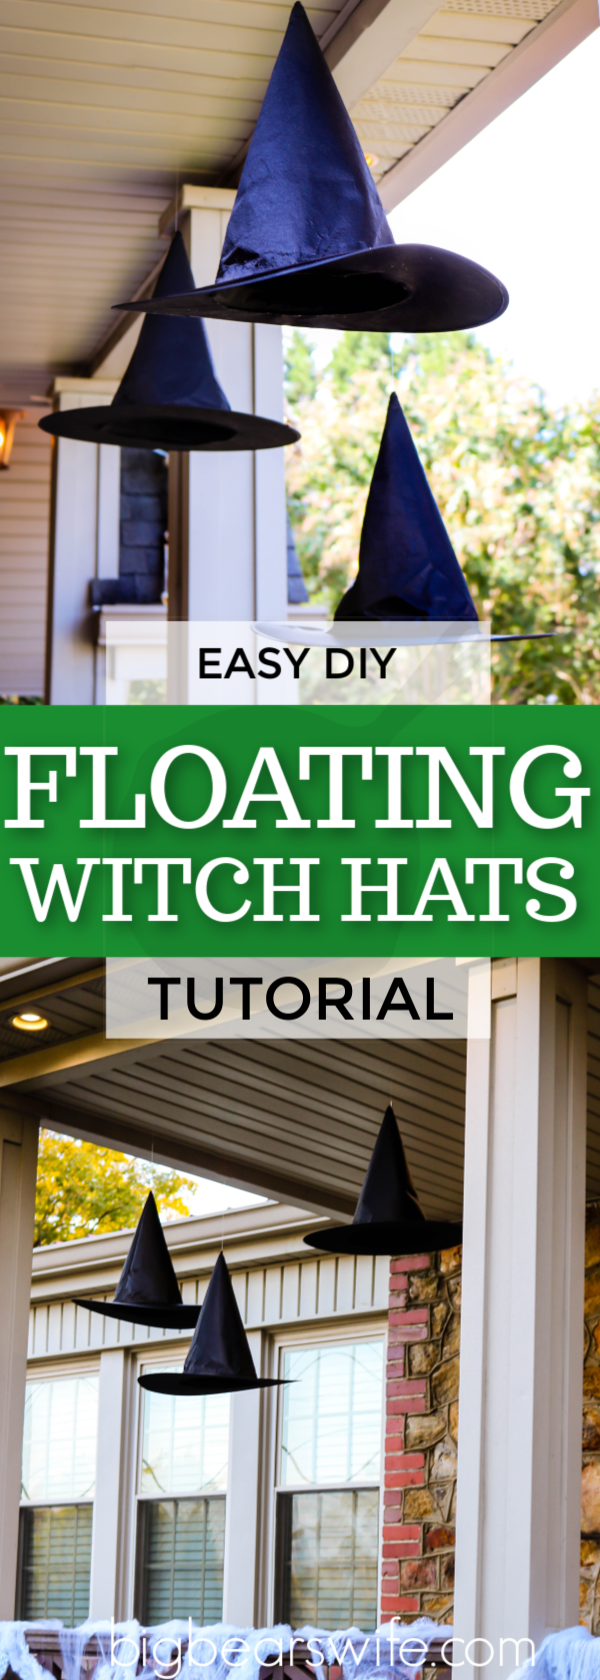 The Witches are IN and their hats are floating around outside! This easy and cheap DIY Halloween craft adds the perfect amount of magic to yourHalloween decorations! I am in love with theseEasy DIY Floating Witch Hats! #HALLOWEENDIY #HalloweenDecorations #CHEAPDIYDECOR